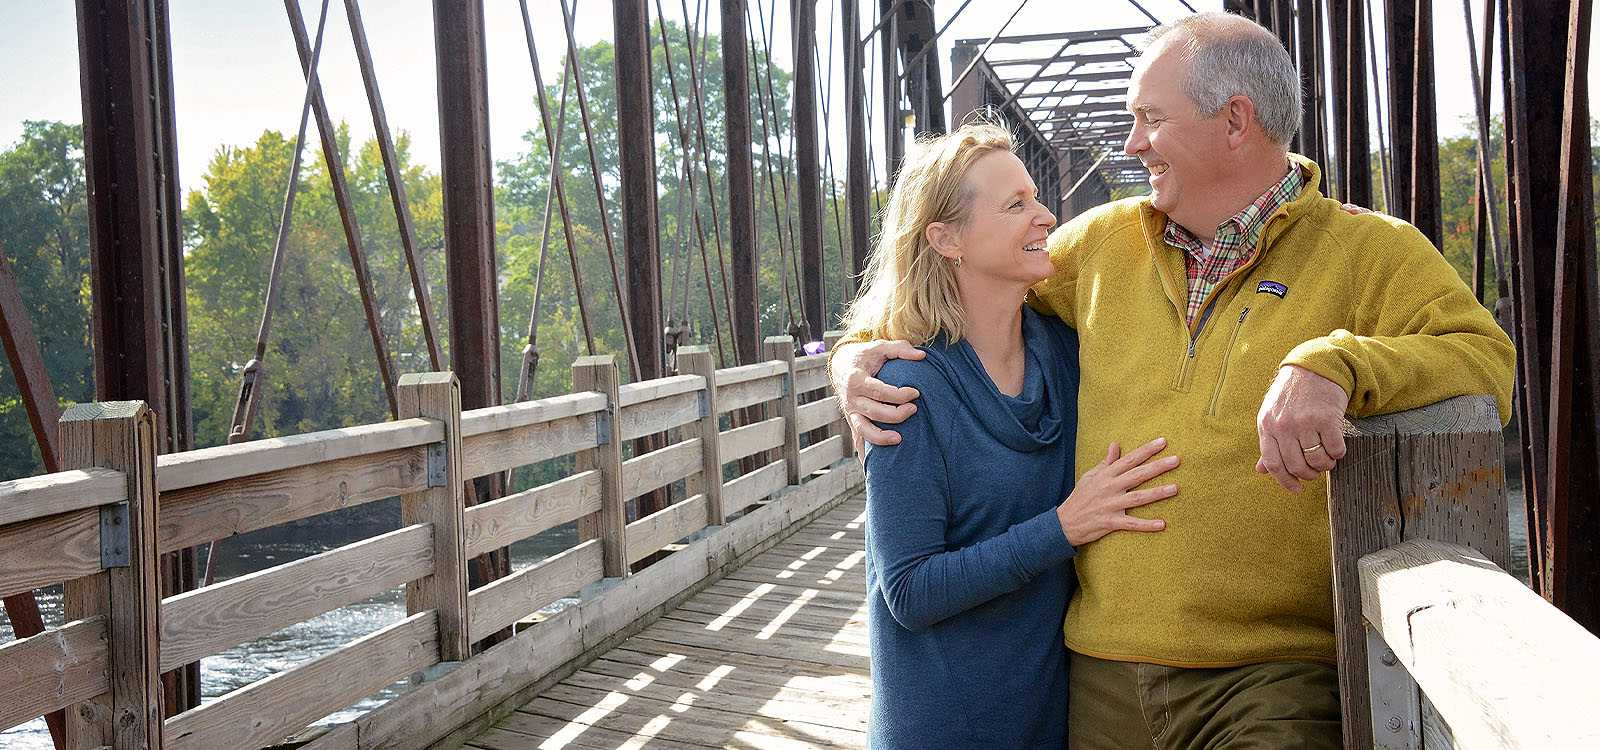 older man and woman on a bridge